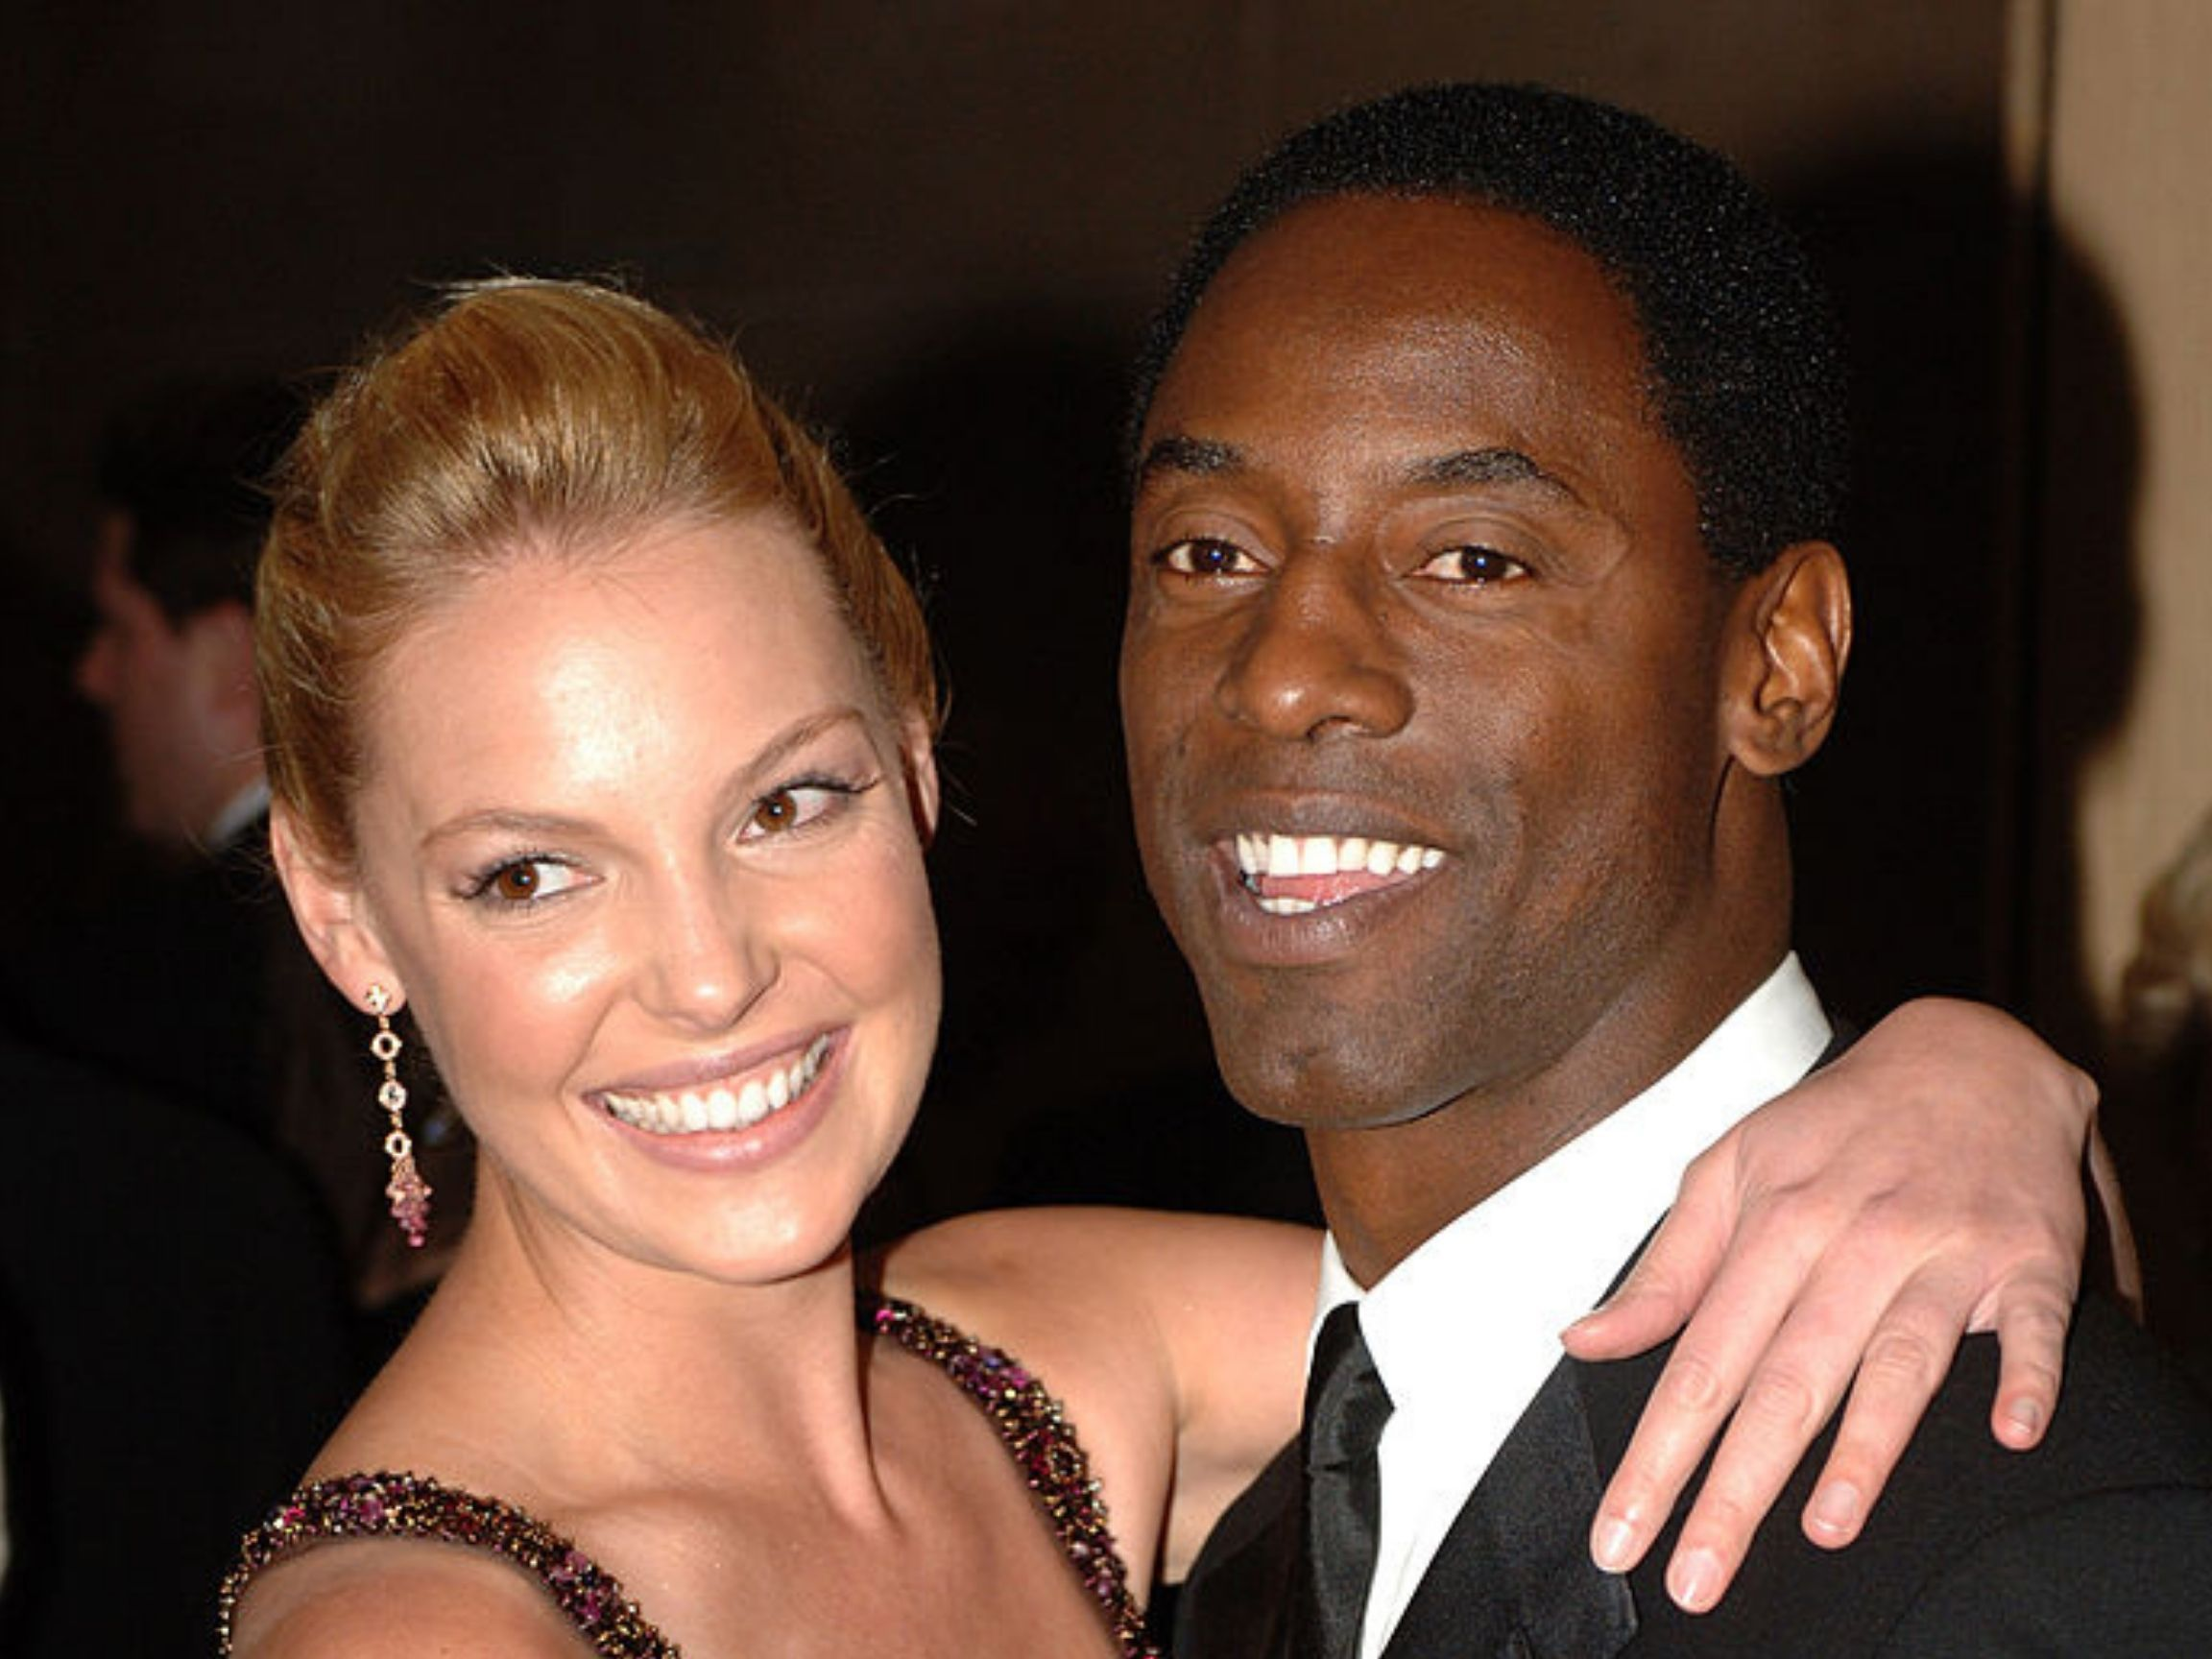 Isaiah Washington brings back feud on Grey's Anatome Katherine Heigl on Twitter